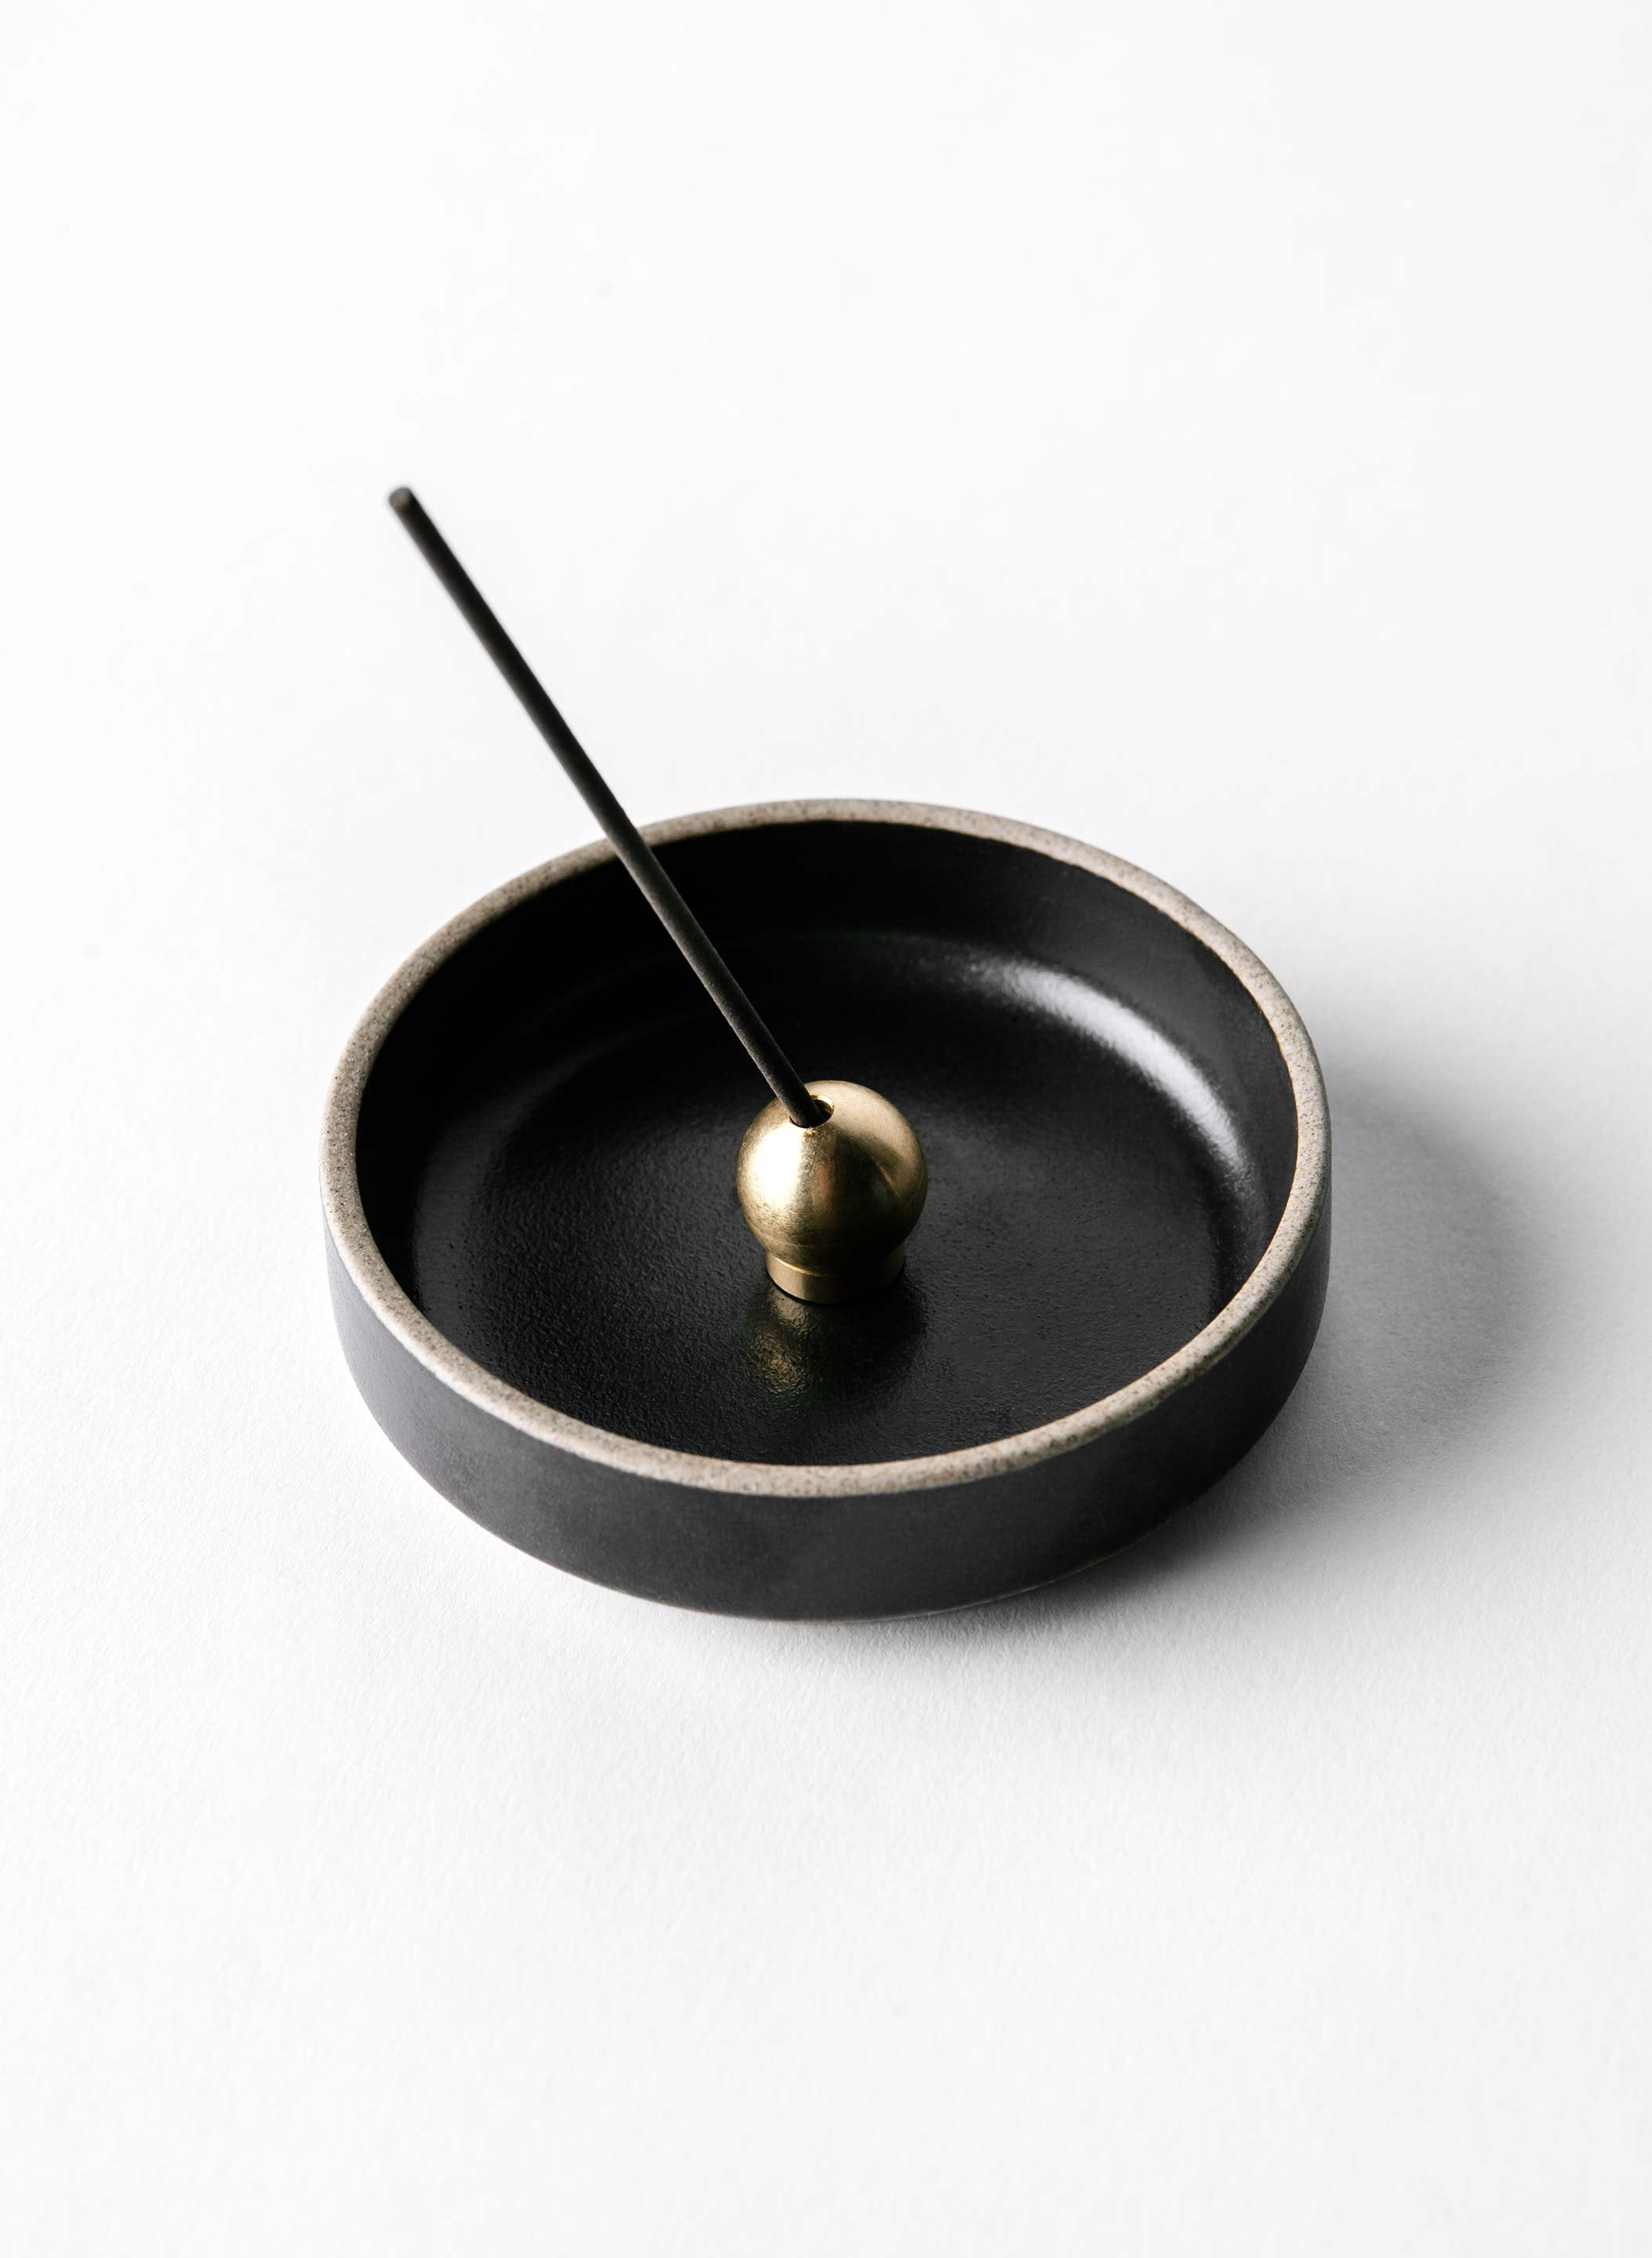 imogene + willie - hasami incense holder set with aloeswood